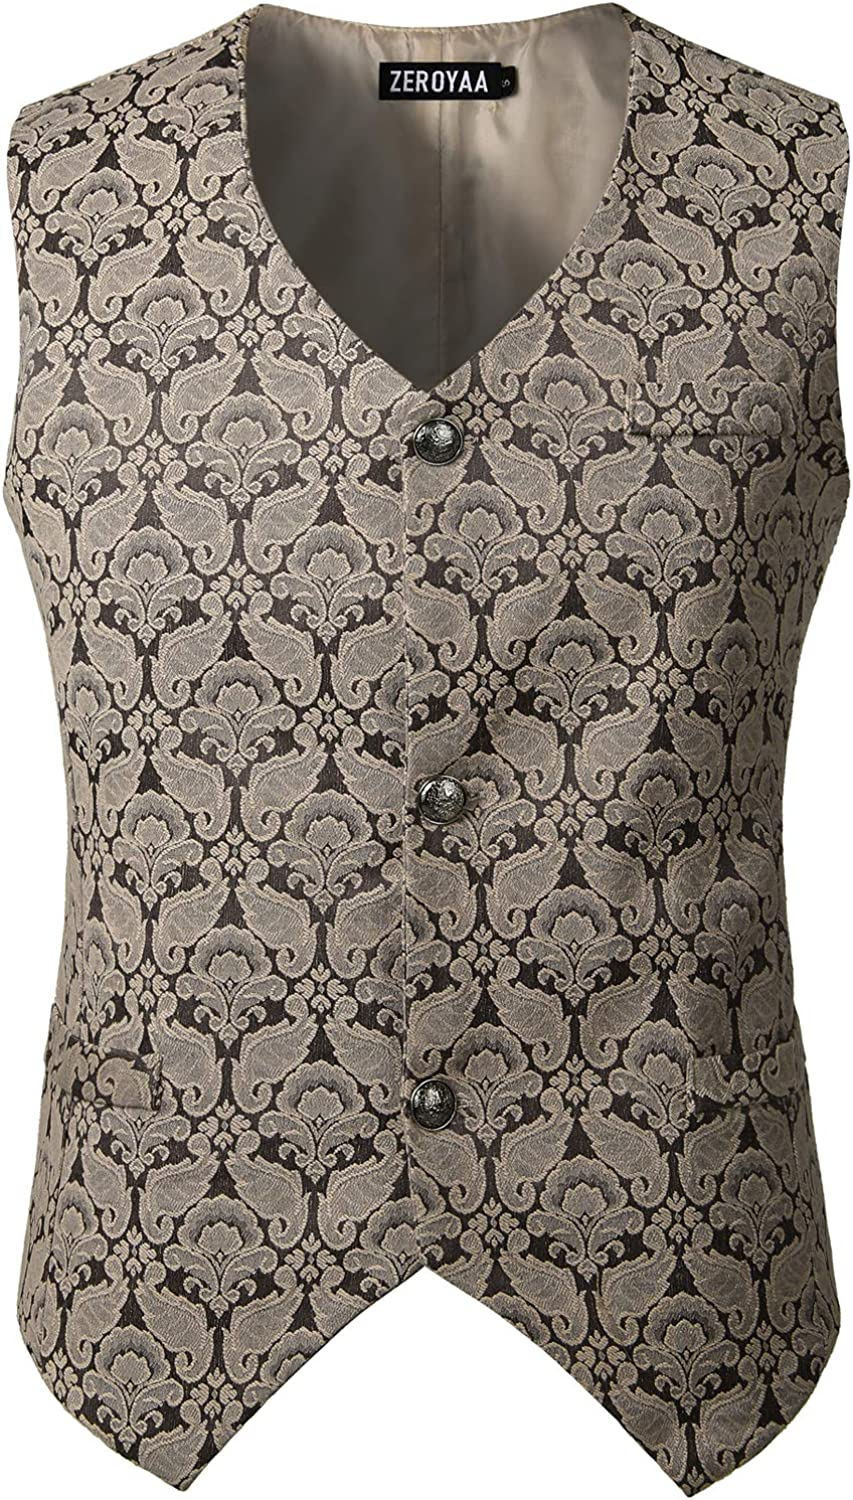 ZEROYAA Mens Challenge the lowest price of Japan Single Breasted Deluxe Vest Bro Steampunk Gothic Victorian